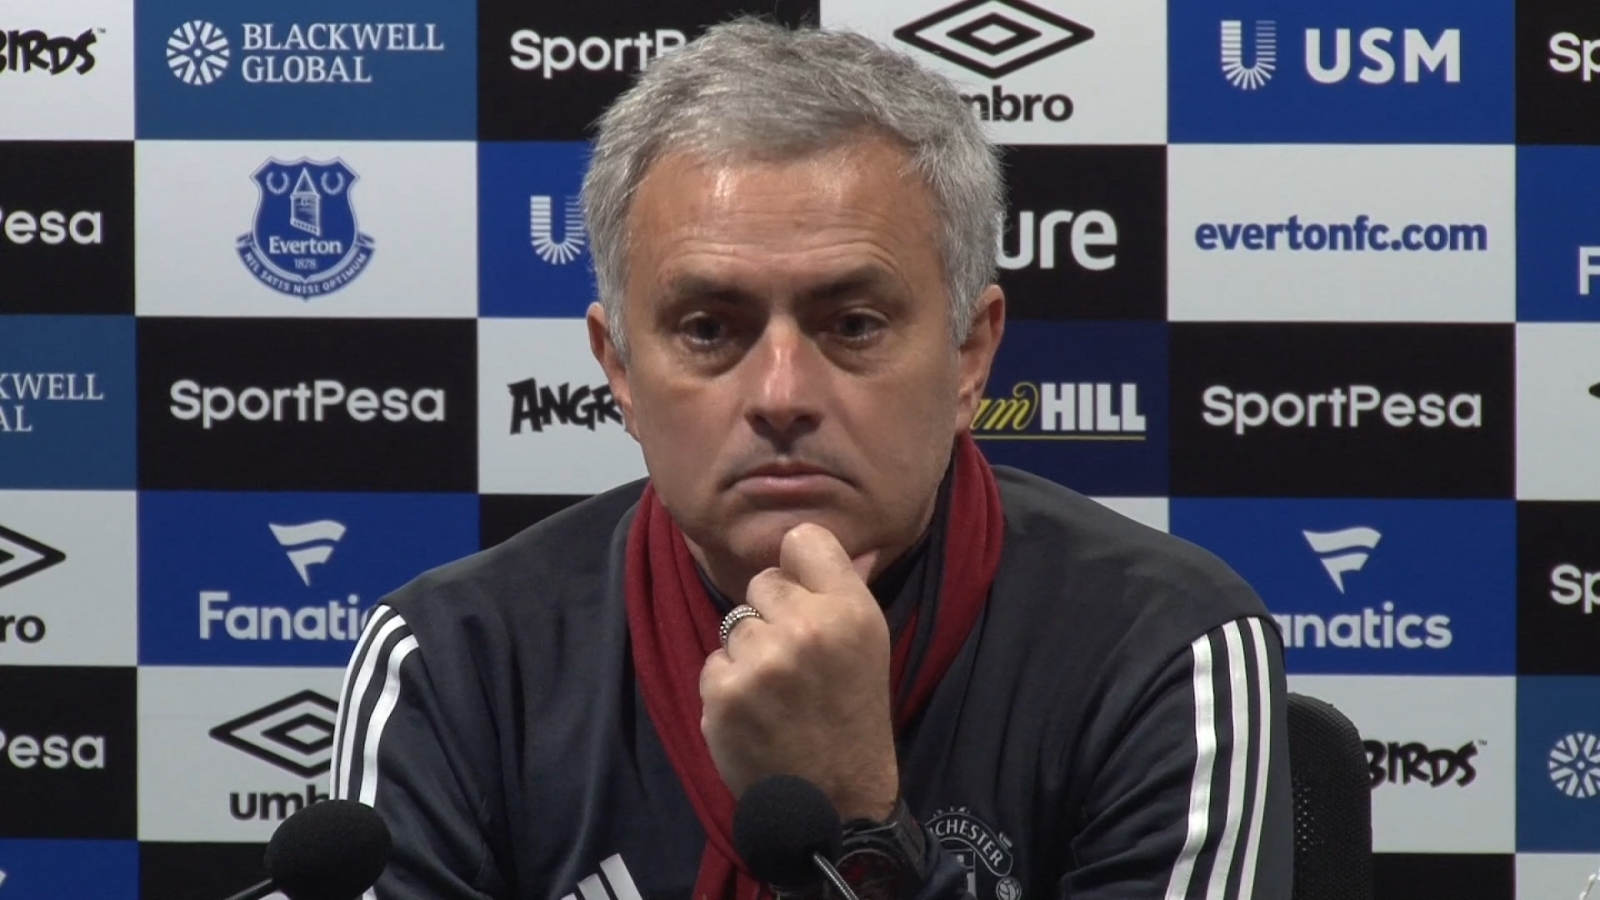 mourinho-challenges-paul-scholes-to-be-as-successful-as-him-if-he-becomes-manager